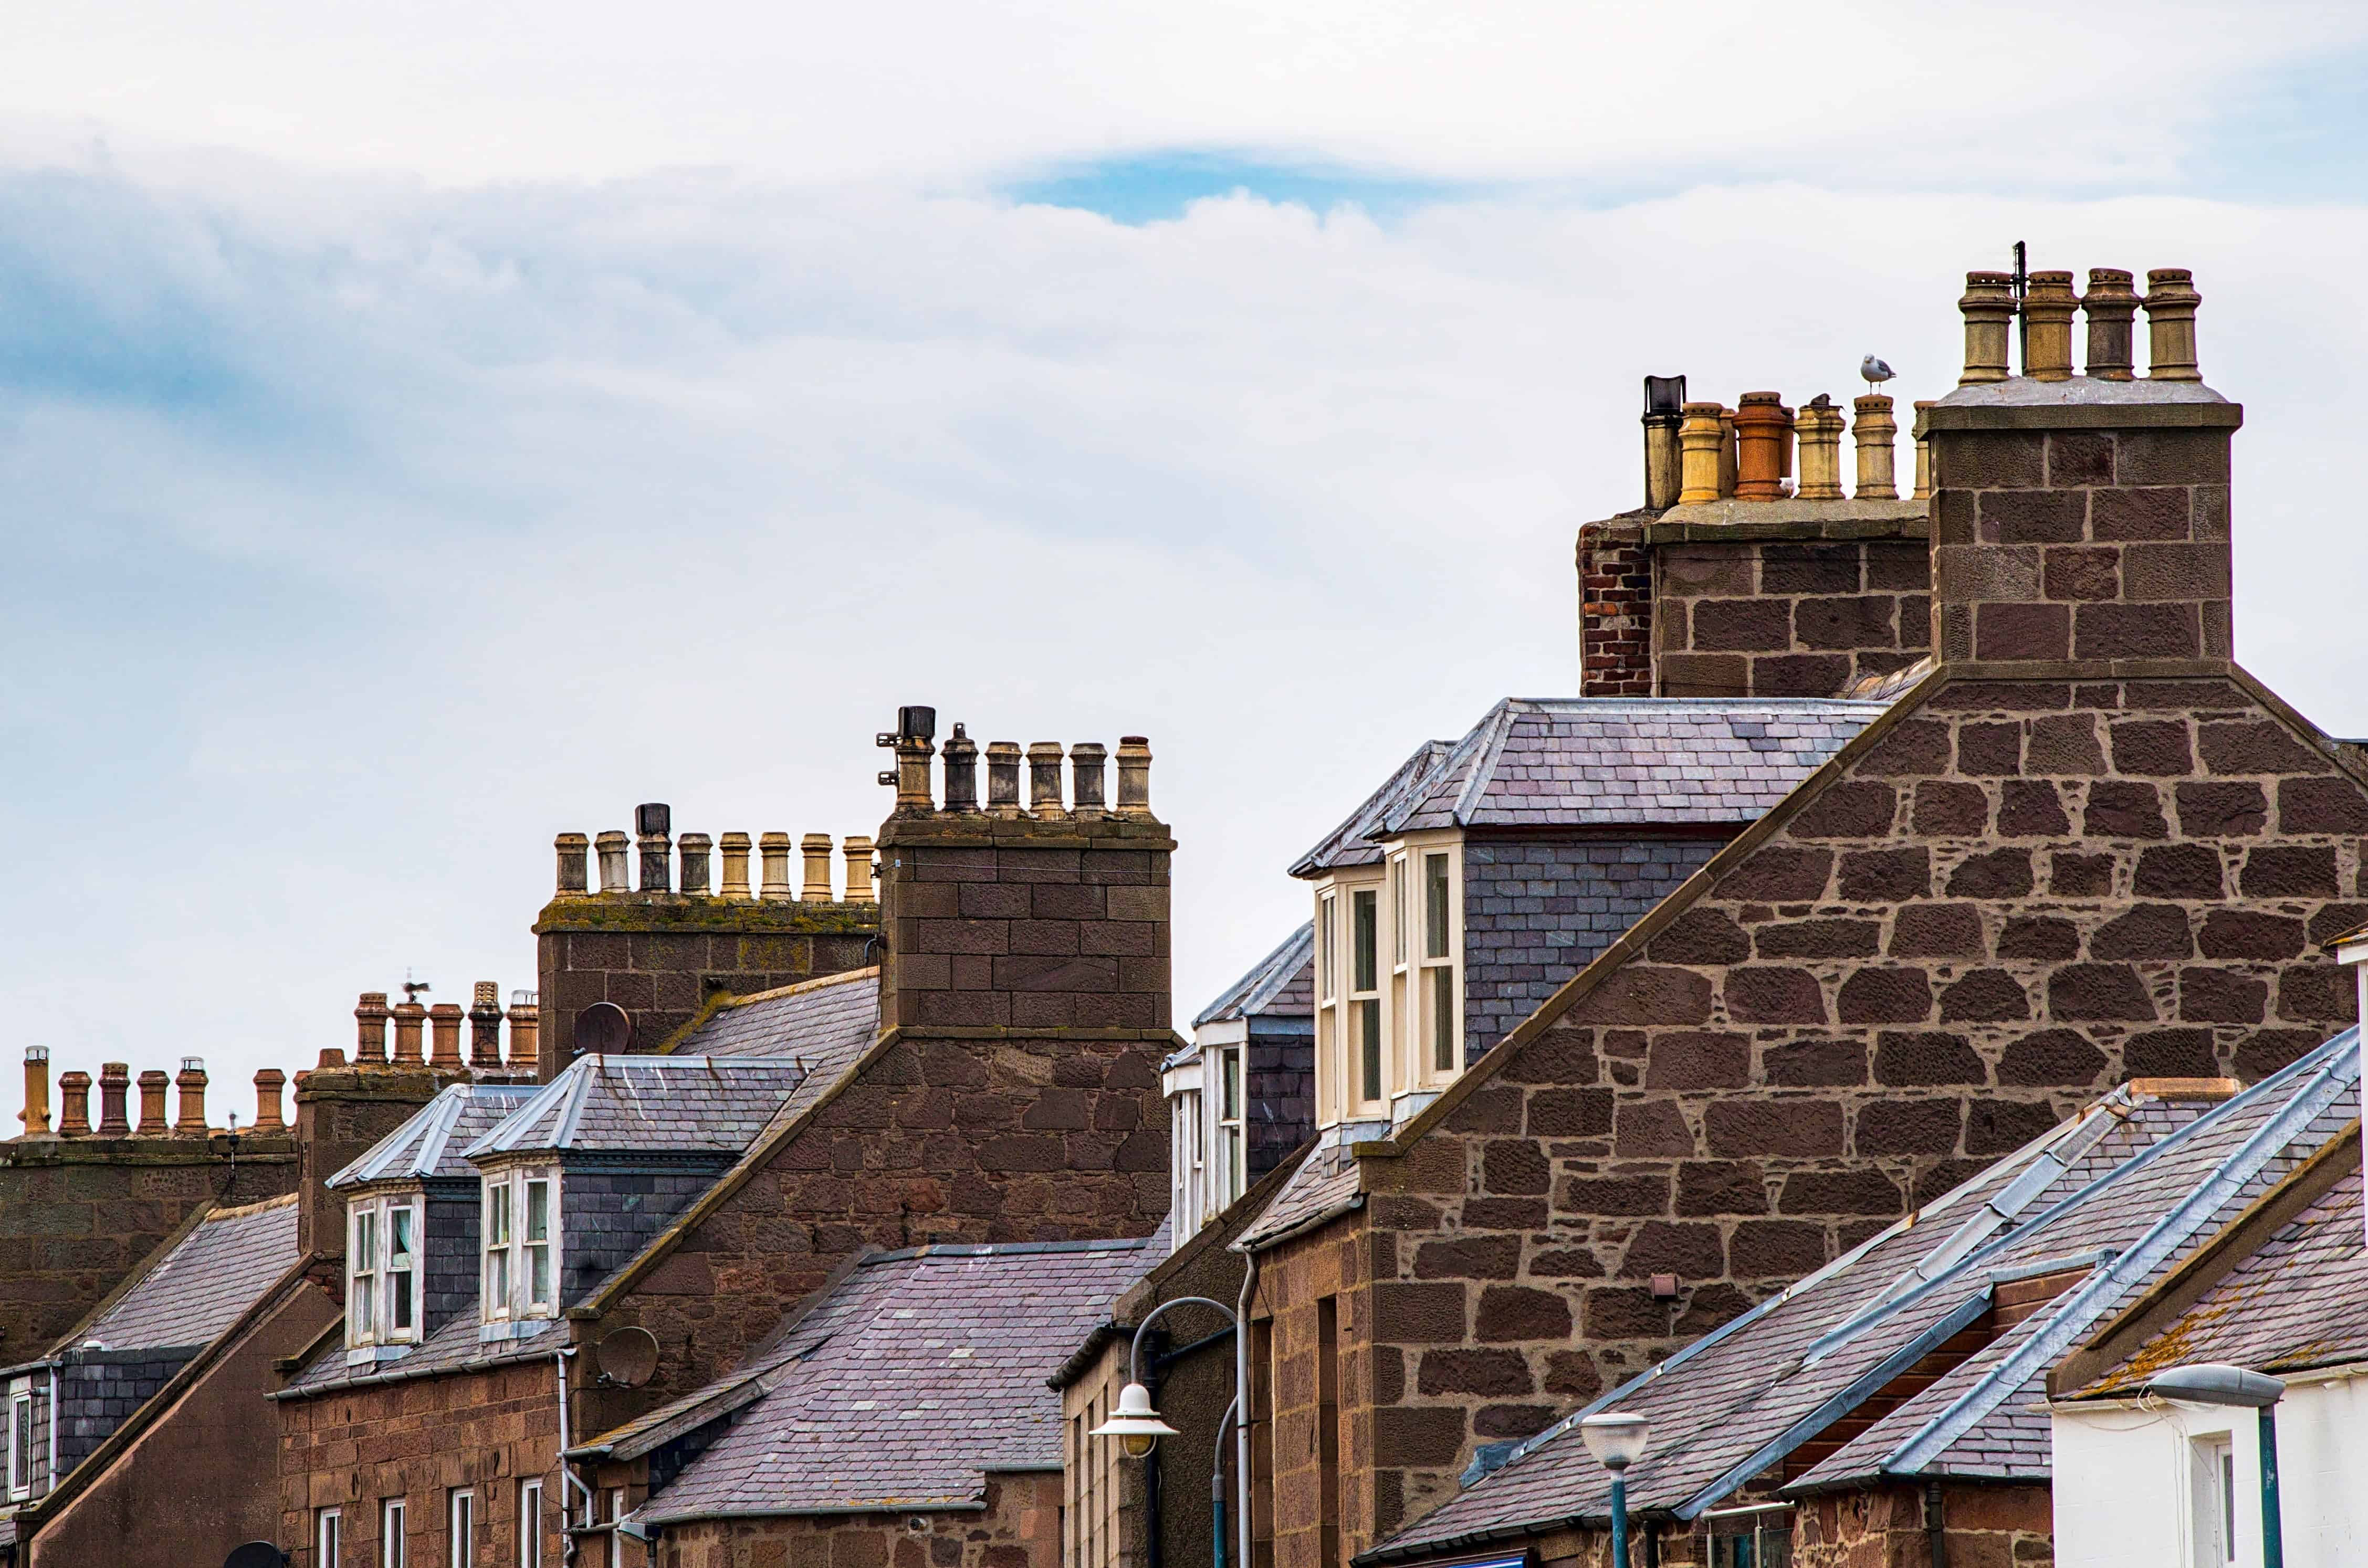 Rooftops with chimneys